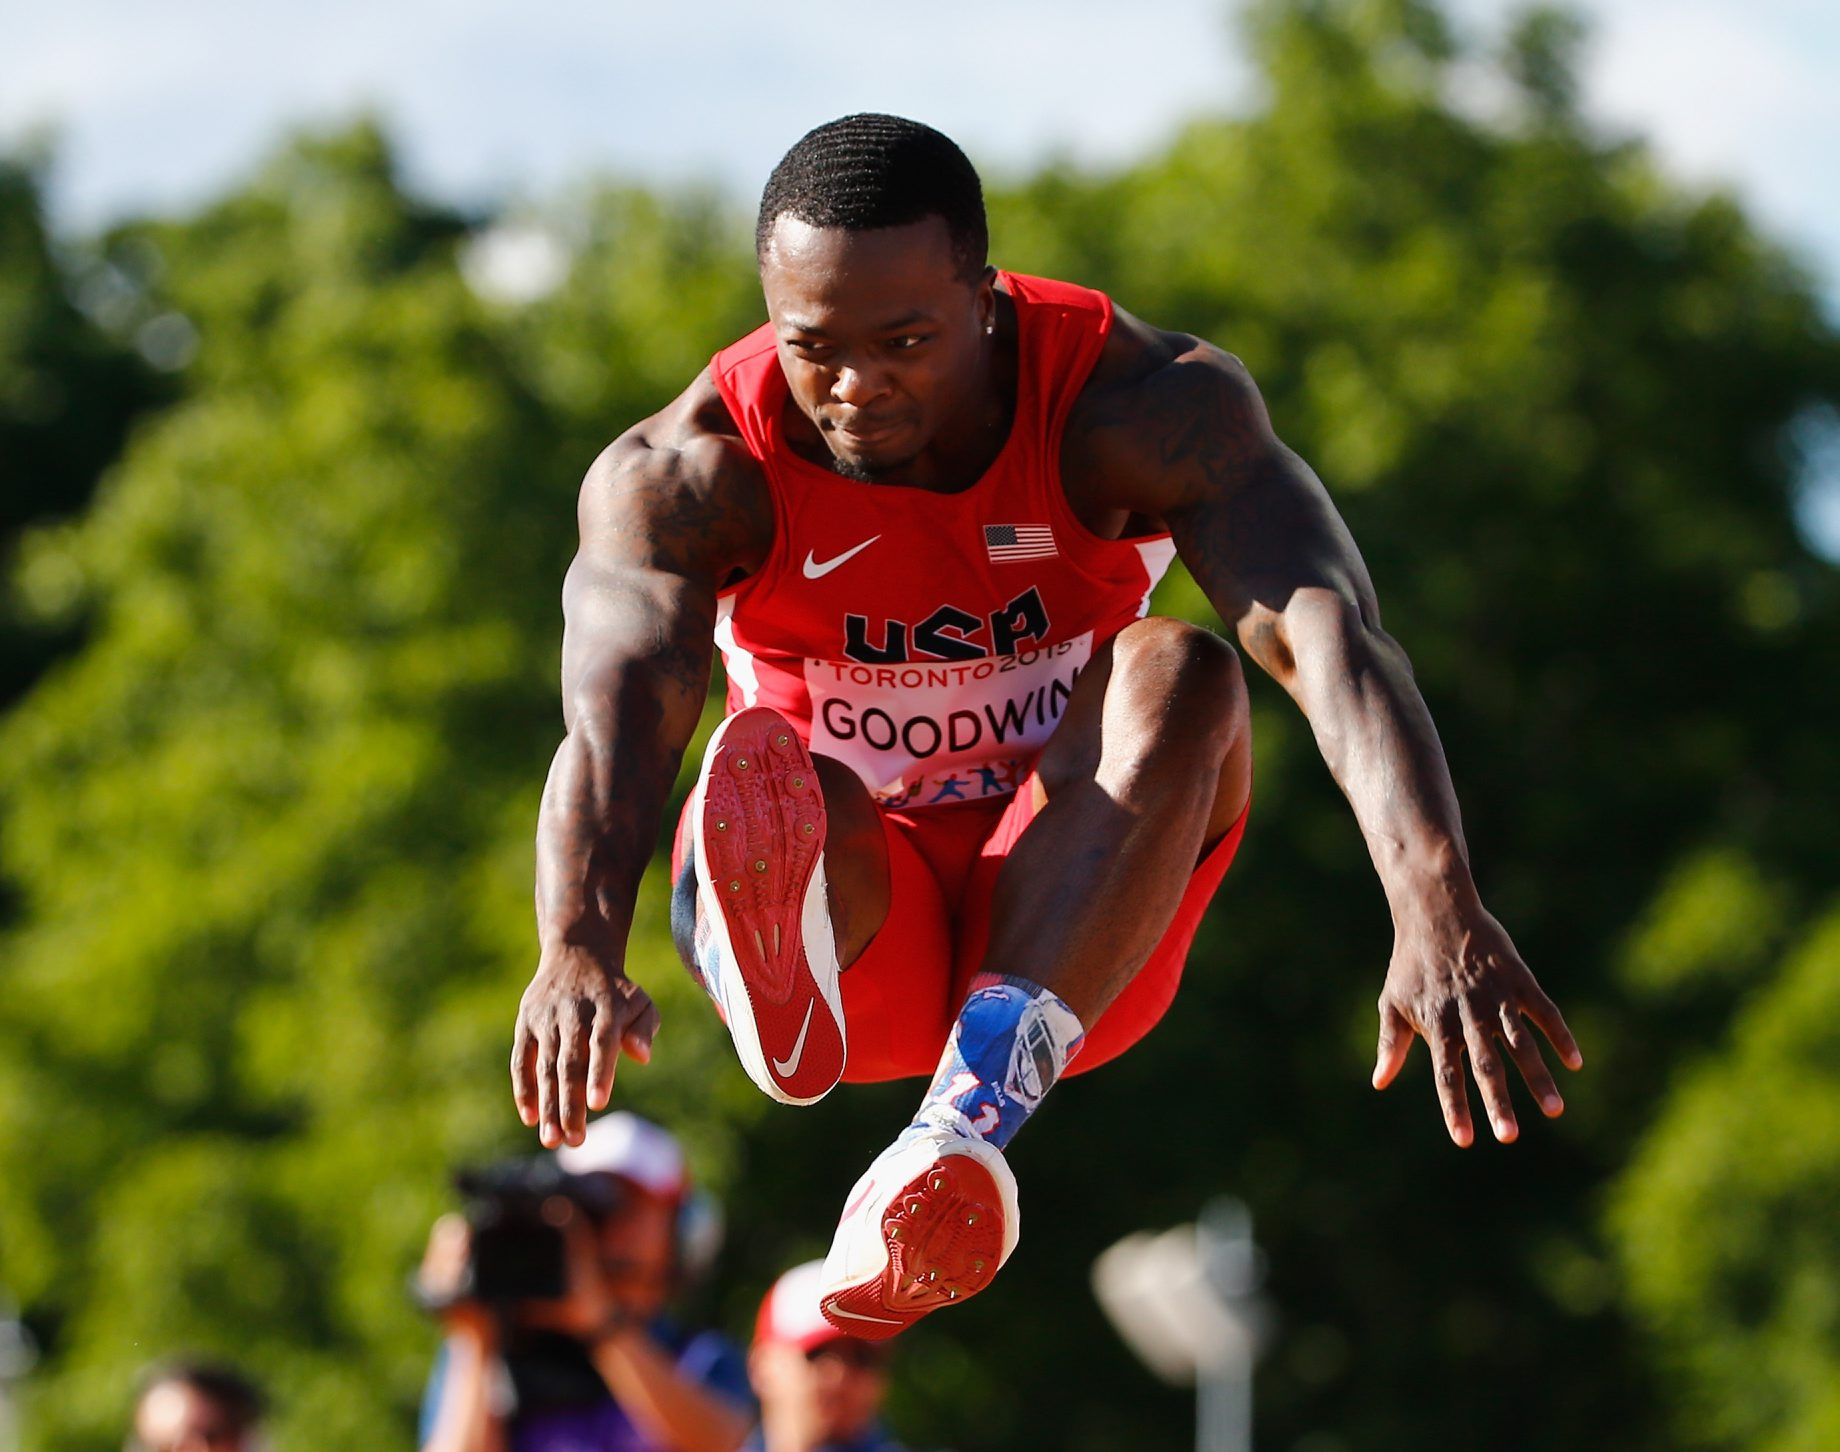 Marquise Goodwin had a top jump of 27 feet, 2 inches at the Pan American Games Wednesday, finishing behind Jeffery Henderson.